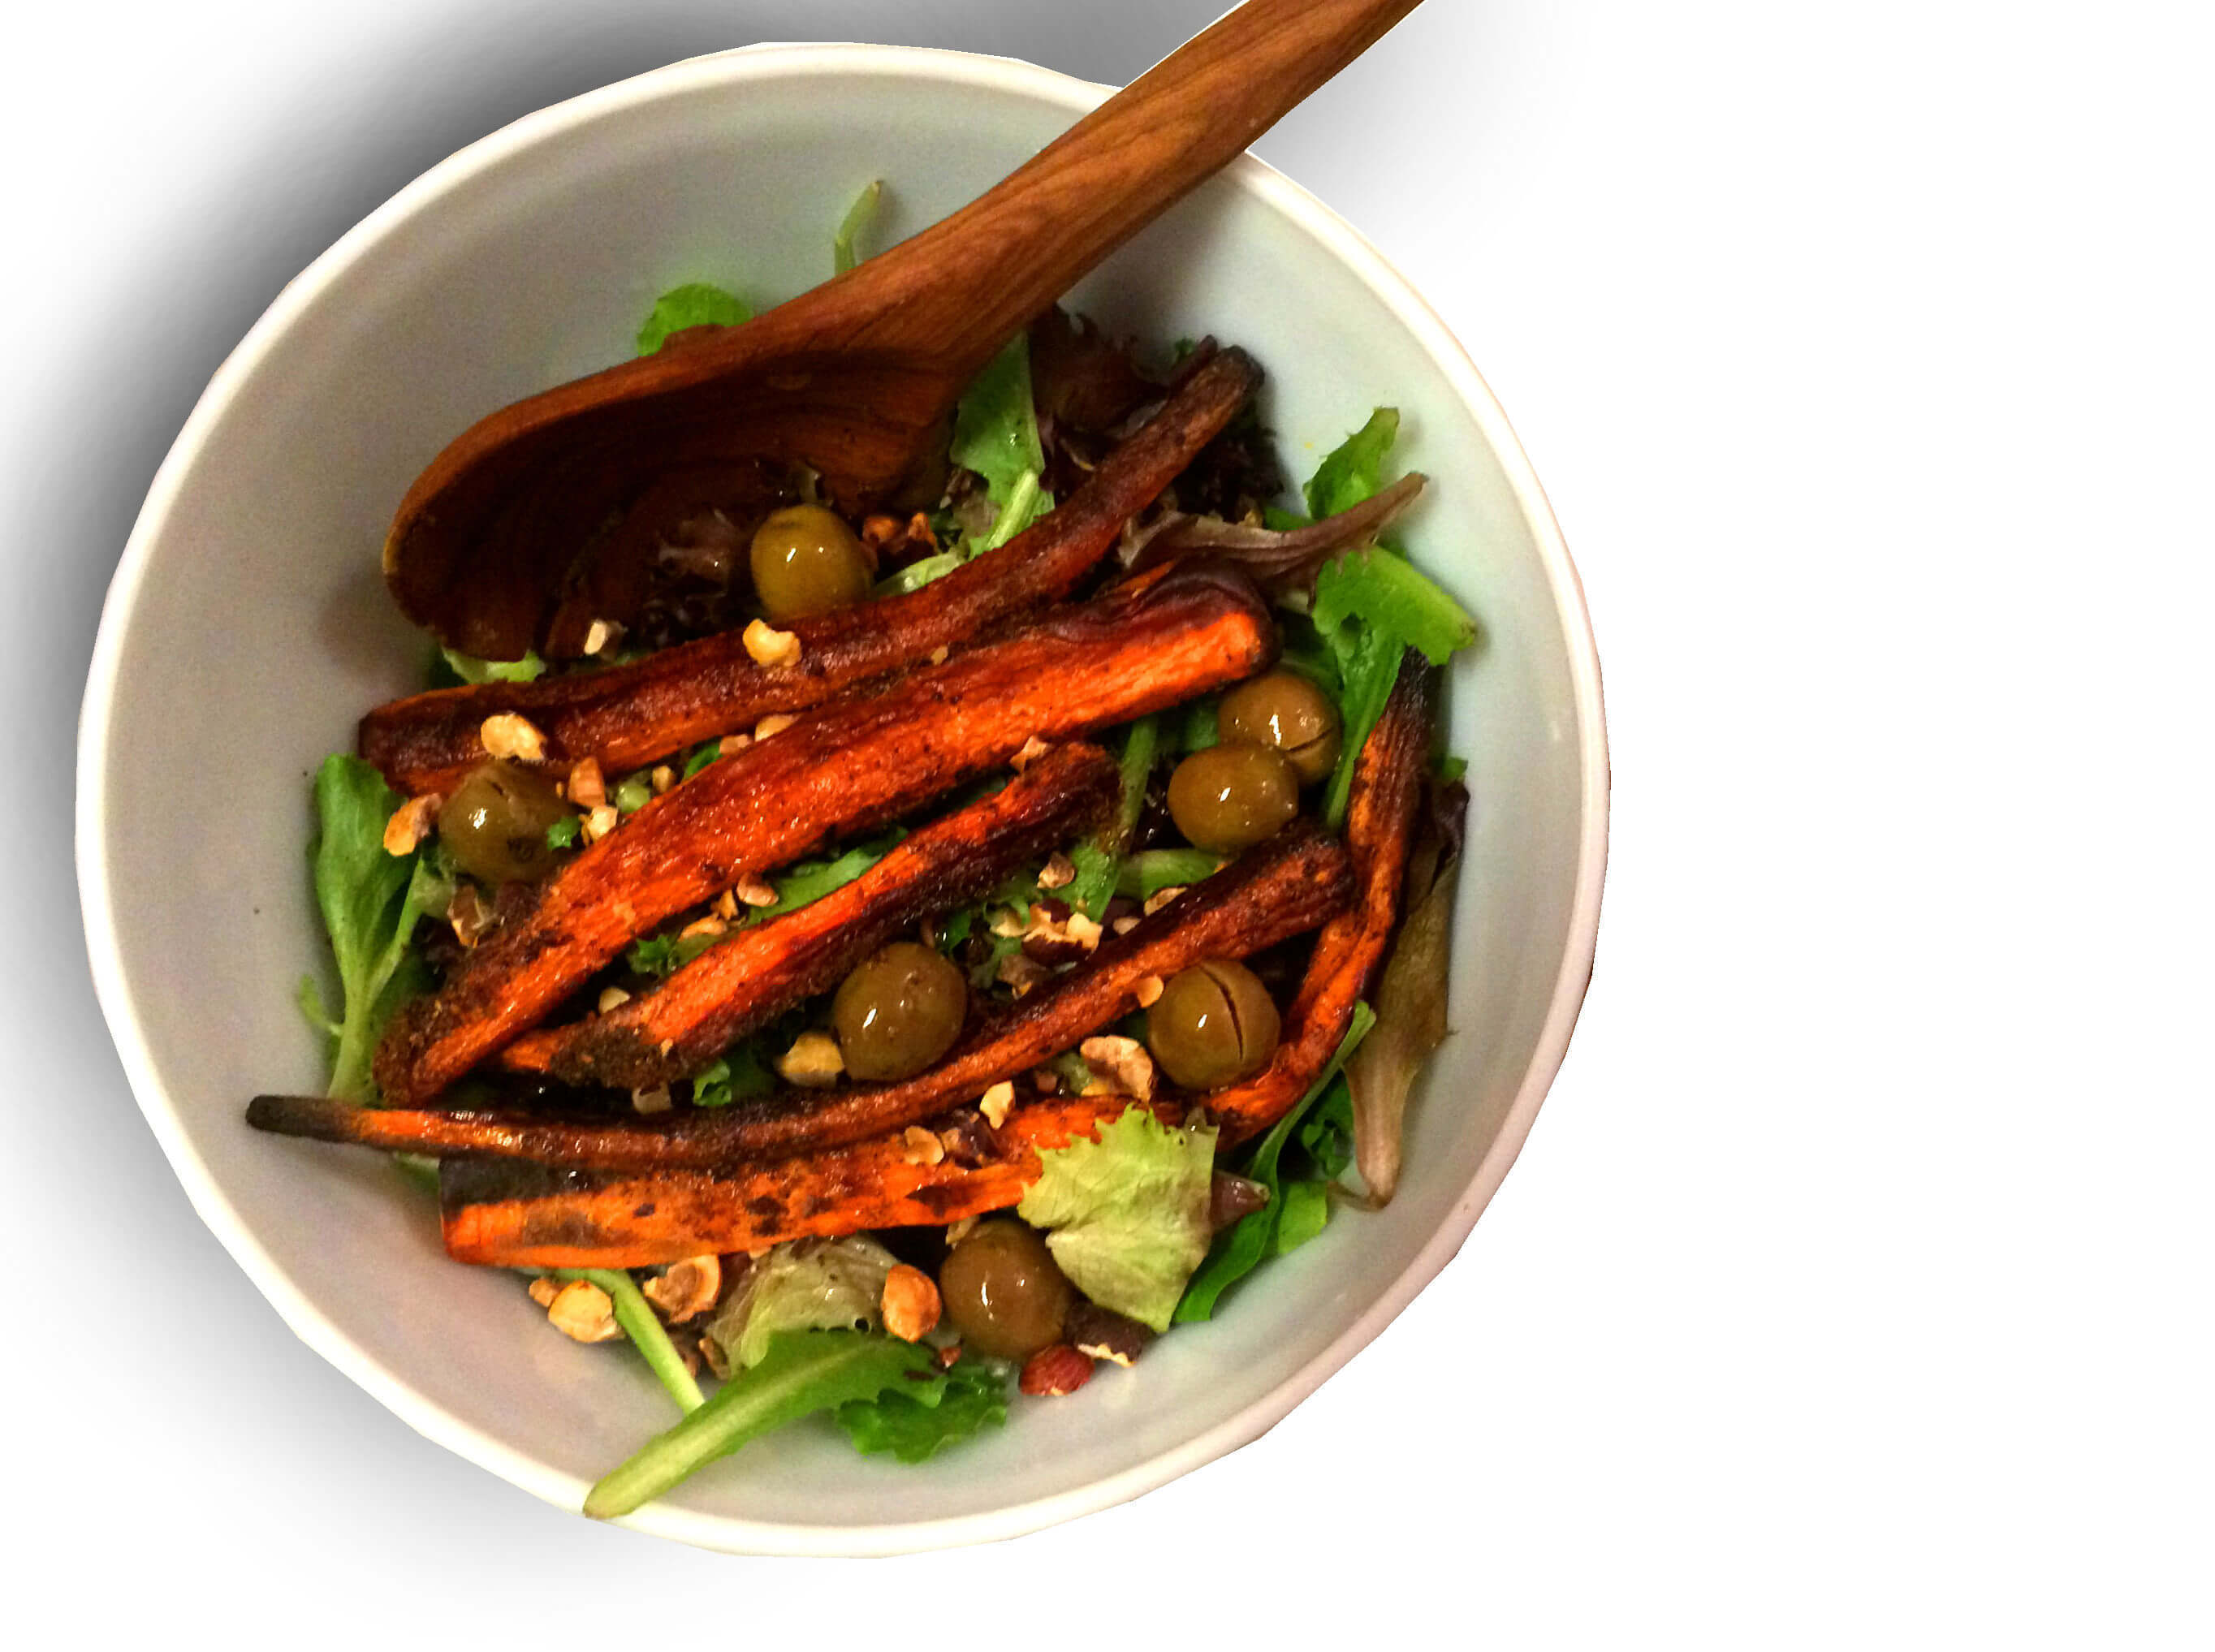 SUMAC CARROT SALAD WITH ALMONDS & OLIVES